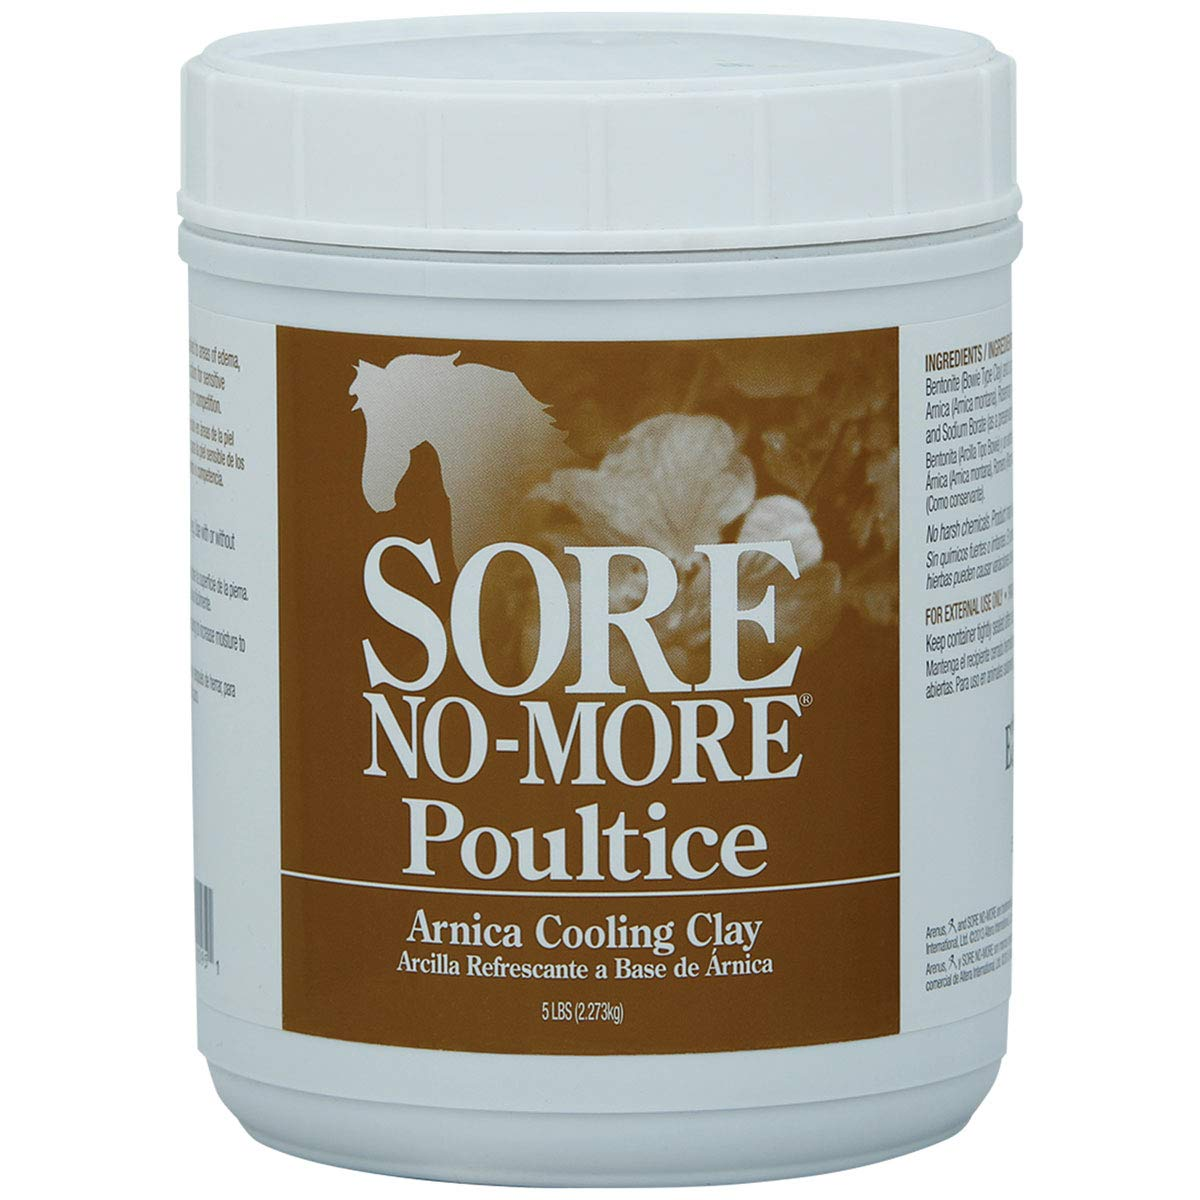 Sore-No-More 5 lb Smooth Non-Irritating Liniment Cool Tight Post-Exercise Poultice Packing Clay